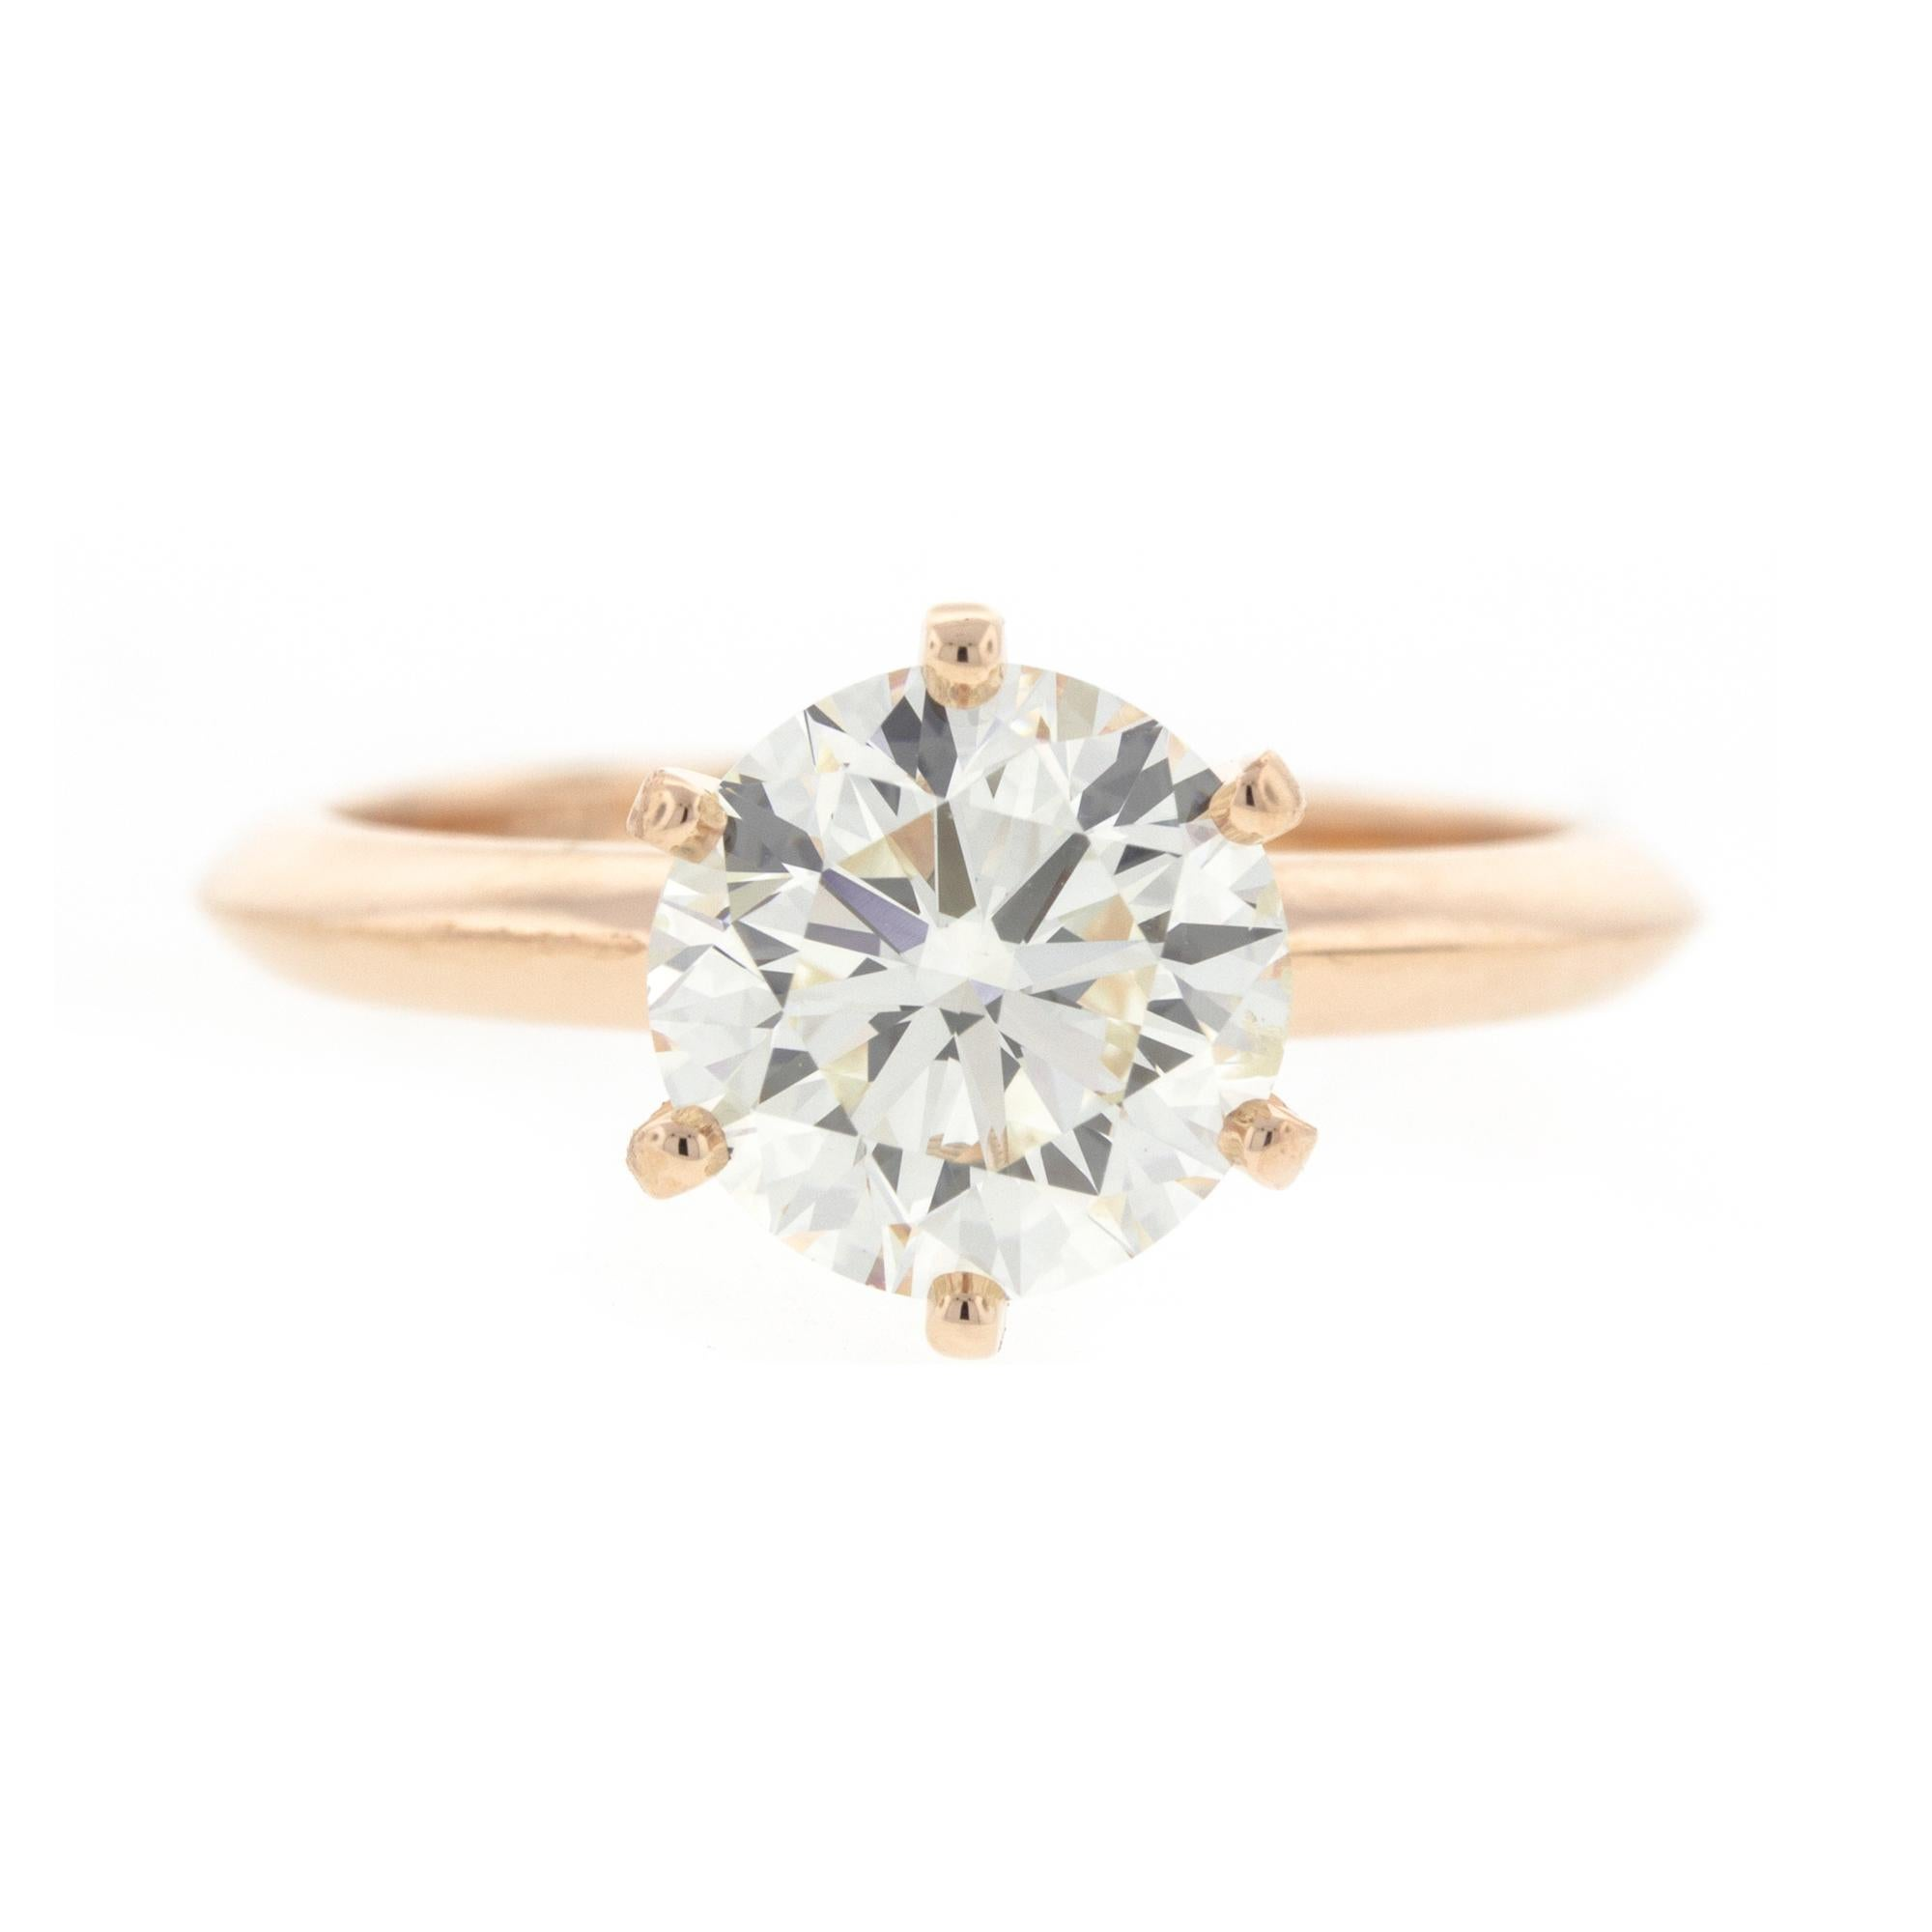 7b3e3470e4b809 Bezel Set Diamond Engagement Ring in Rose Gold 'GIA' For Sale at 1stdibs